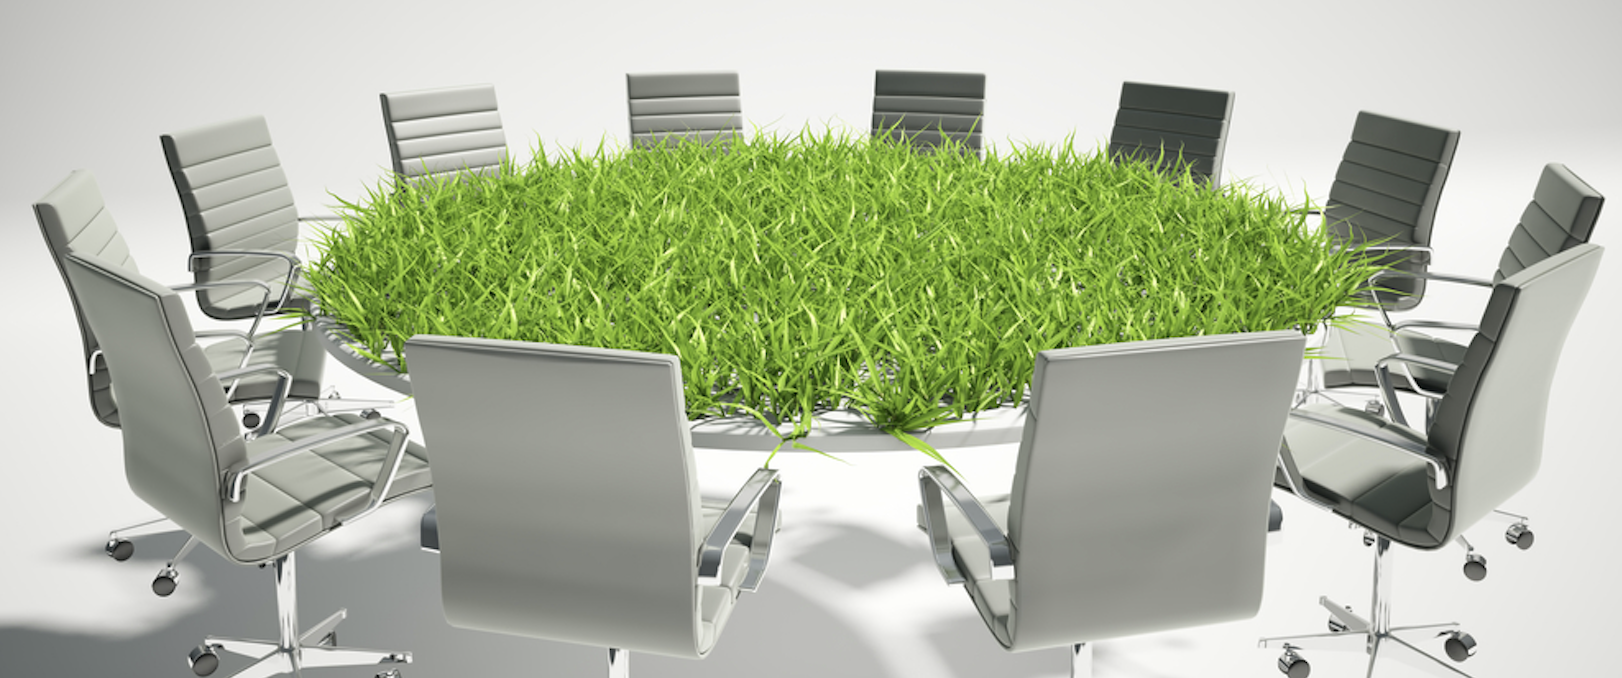 Scopri come comunicare una green company attraverso il green marketing